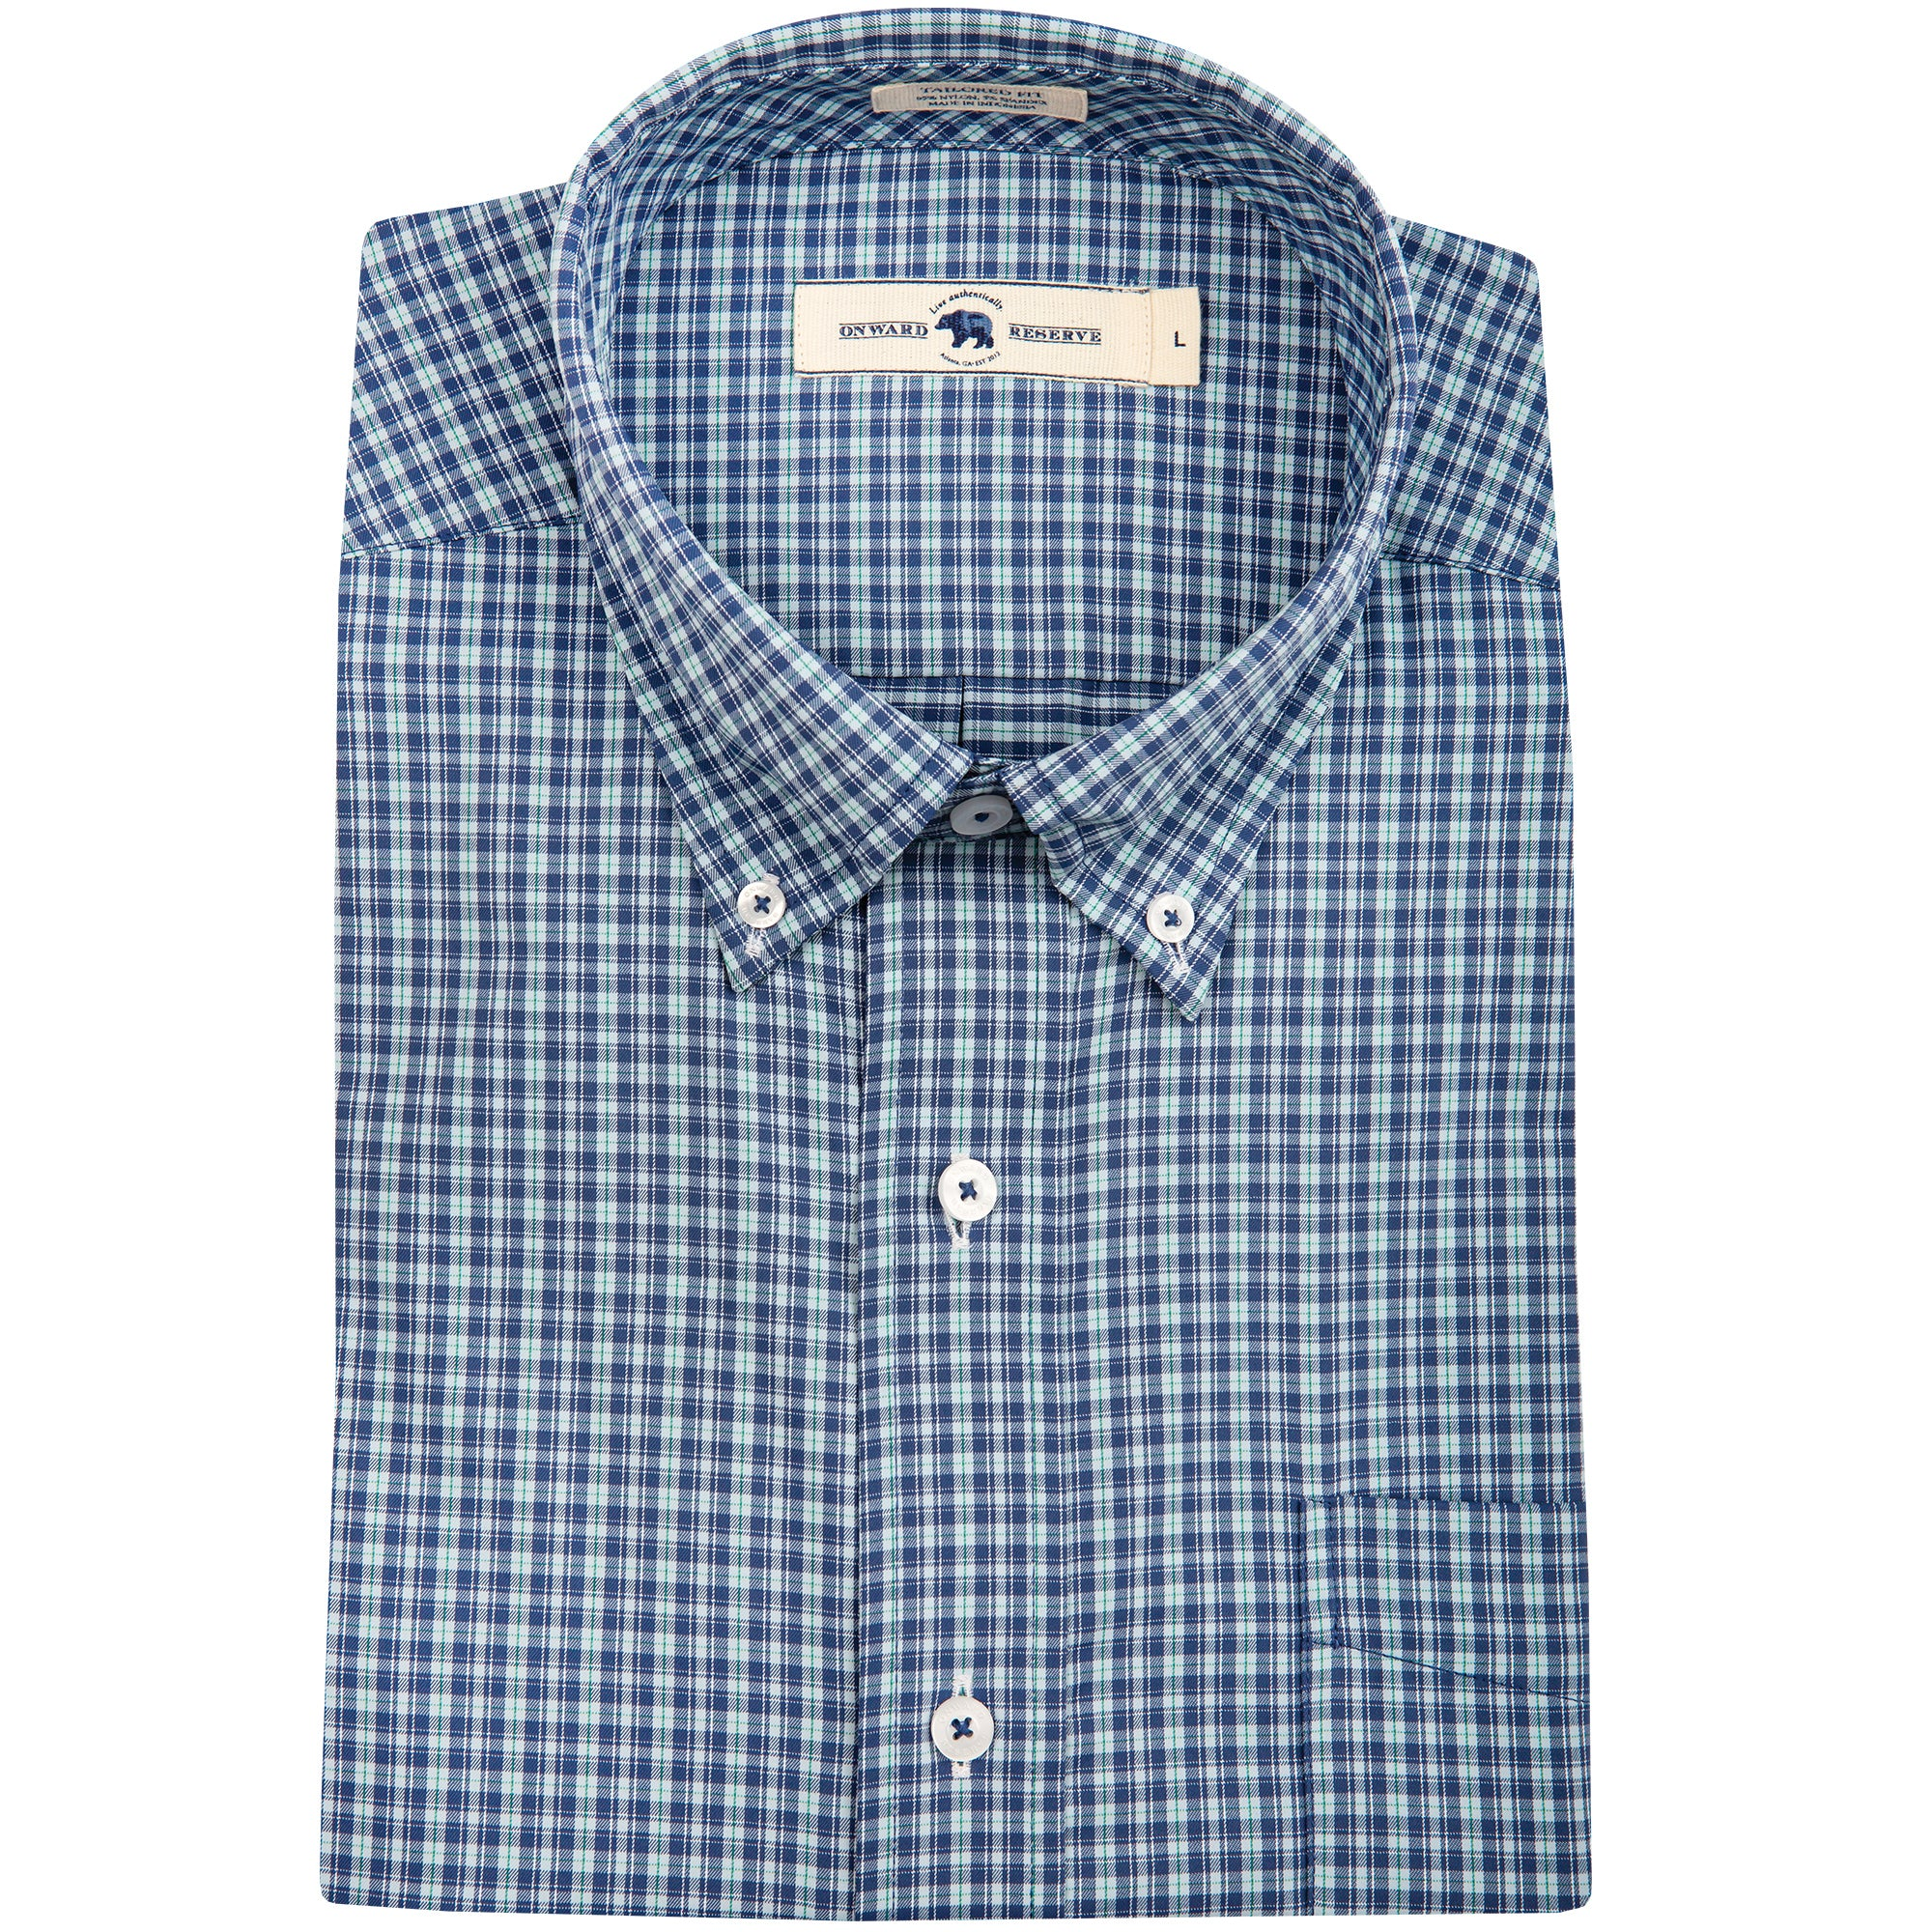 Lake Tailored Fit Performance Button Down - OnwardReserve